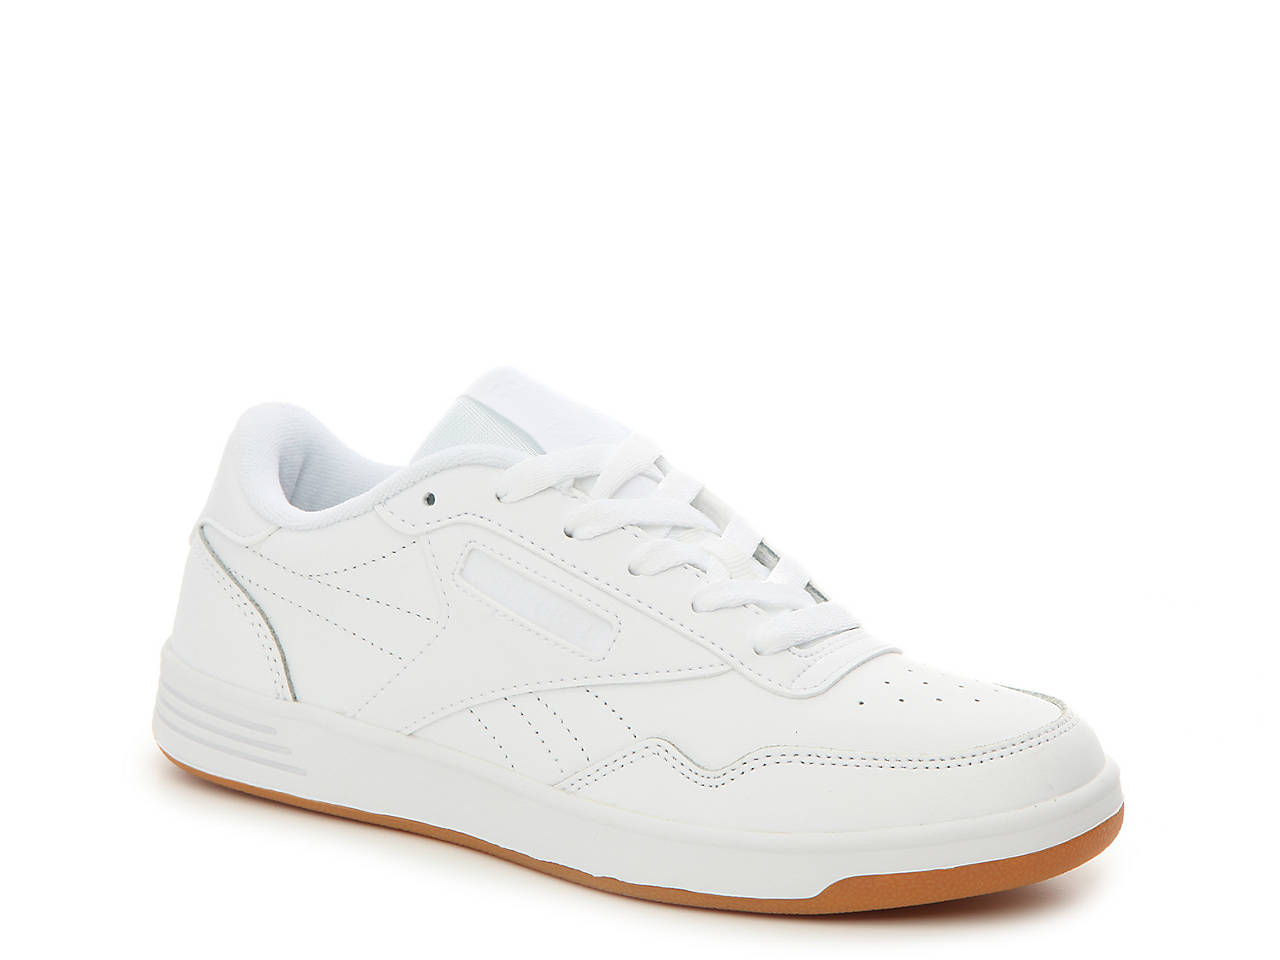 f43d8324eff2 Reebok Club Memt Sneaker - Women s Women s Shoes